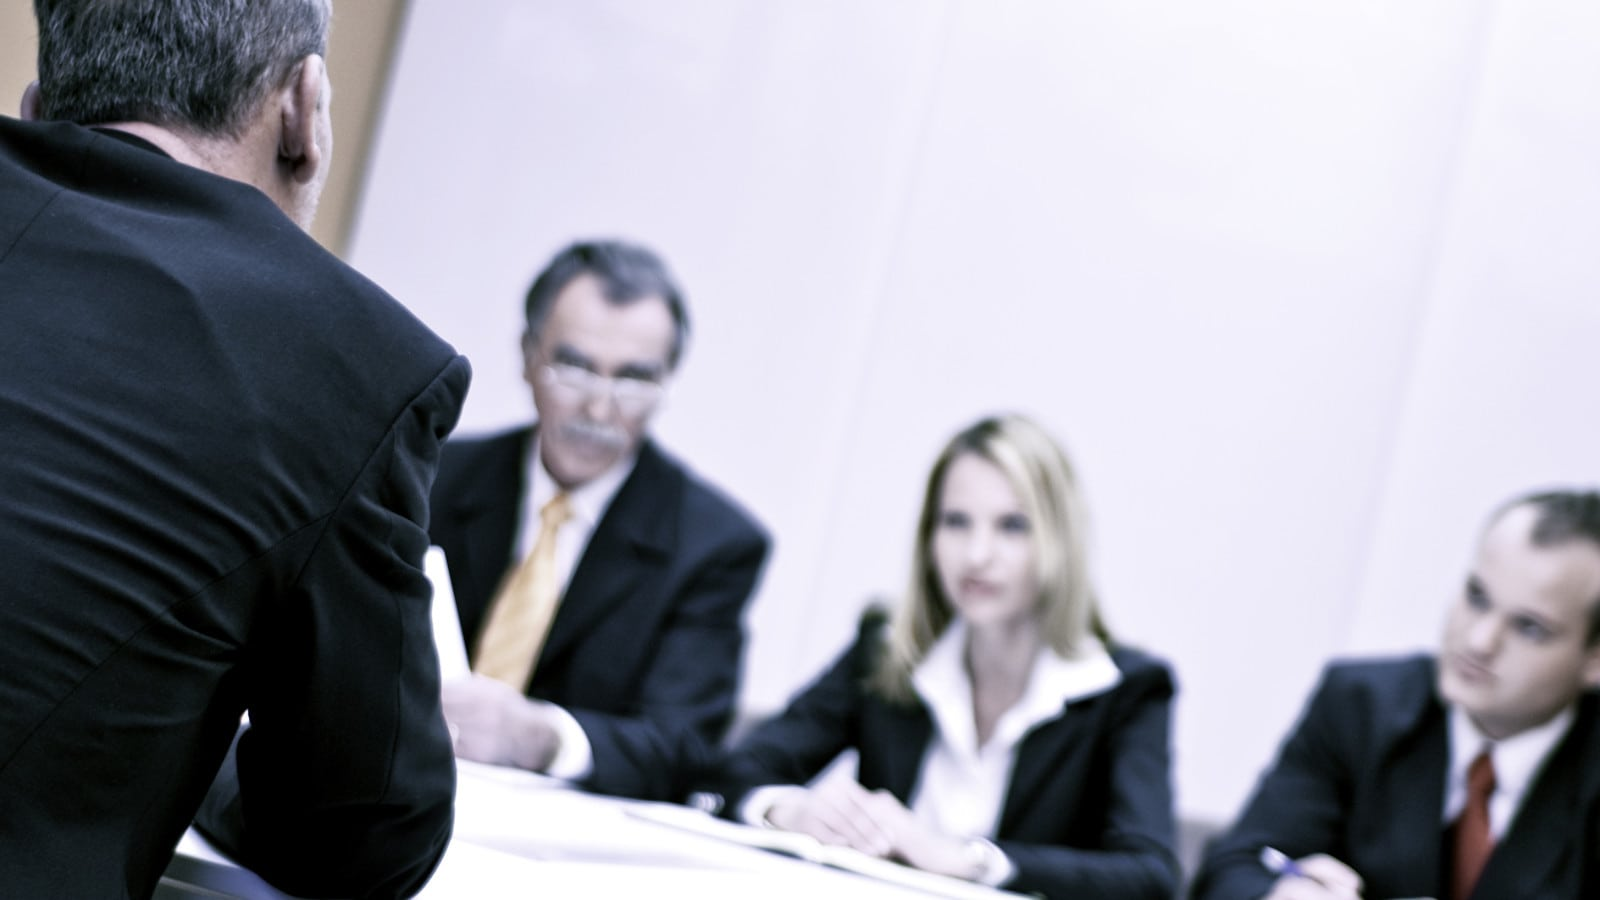 Attorneys Meeting Together Privately In A Boardroom Stock Photo